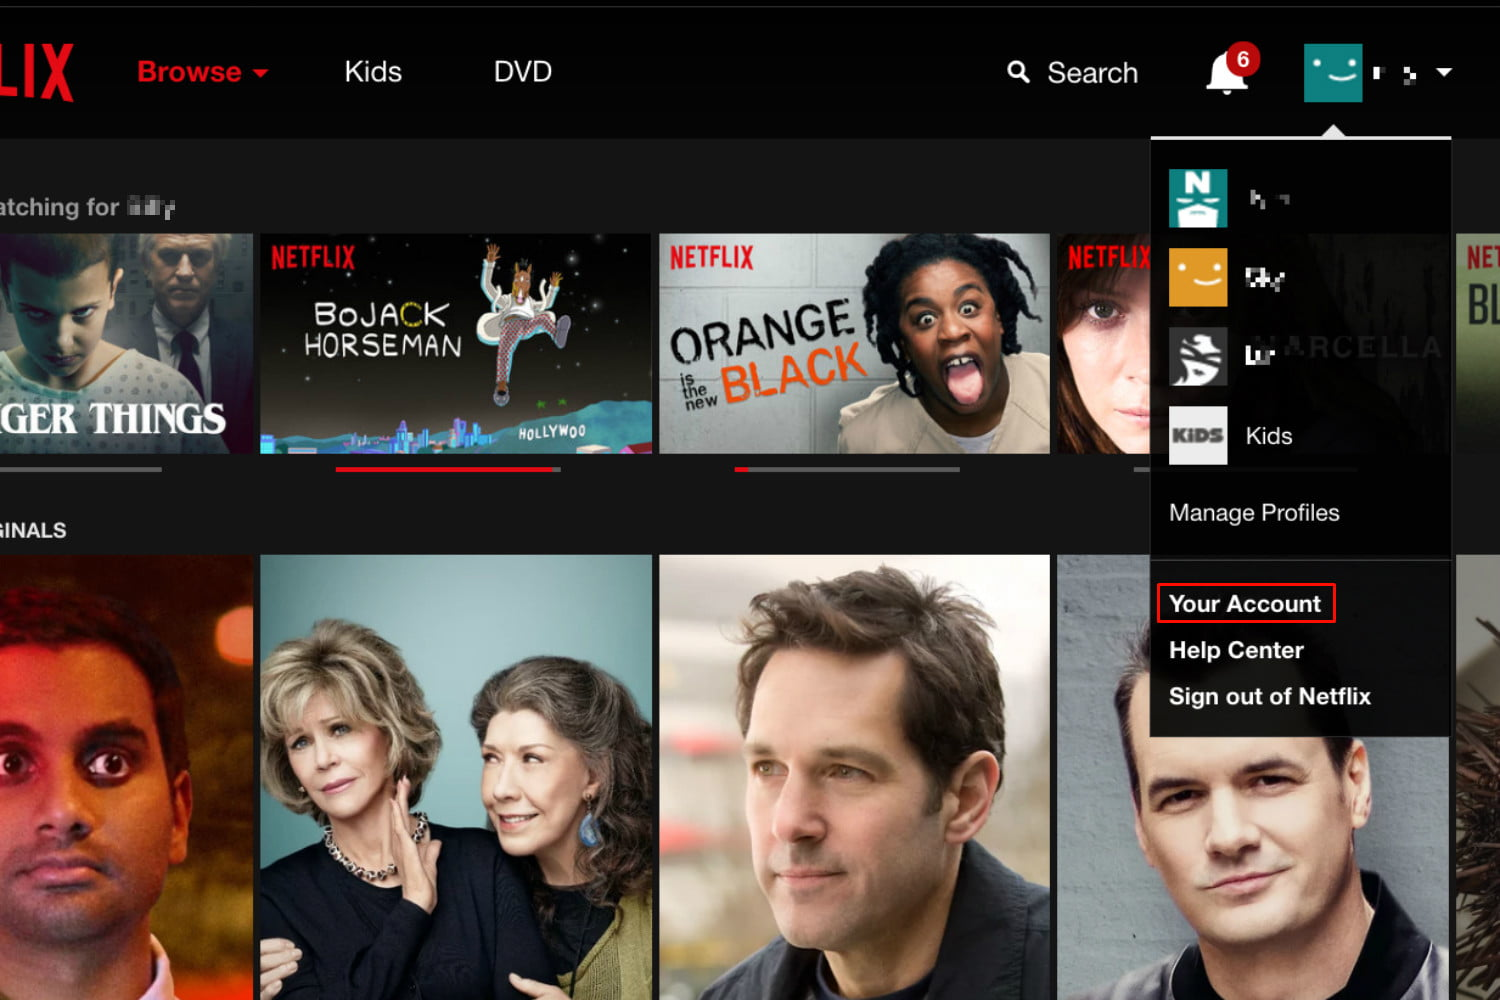 how to find viewing history on netflix